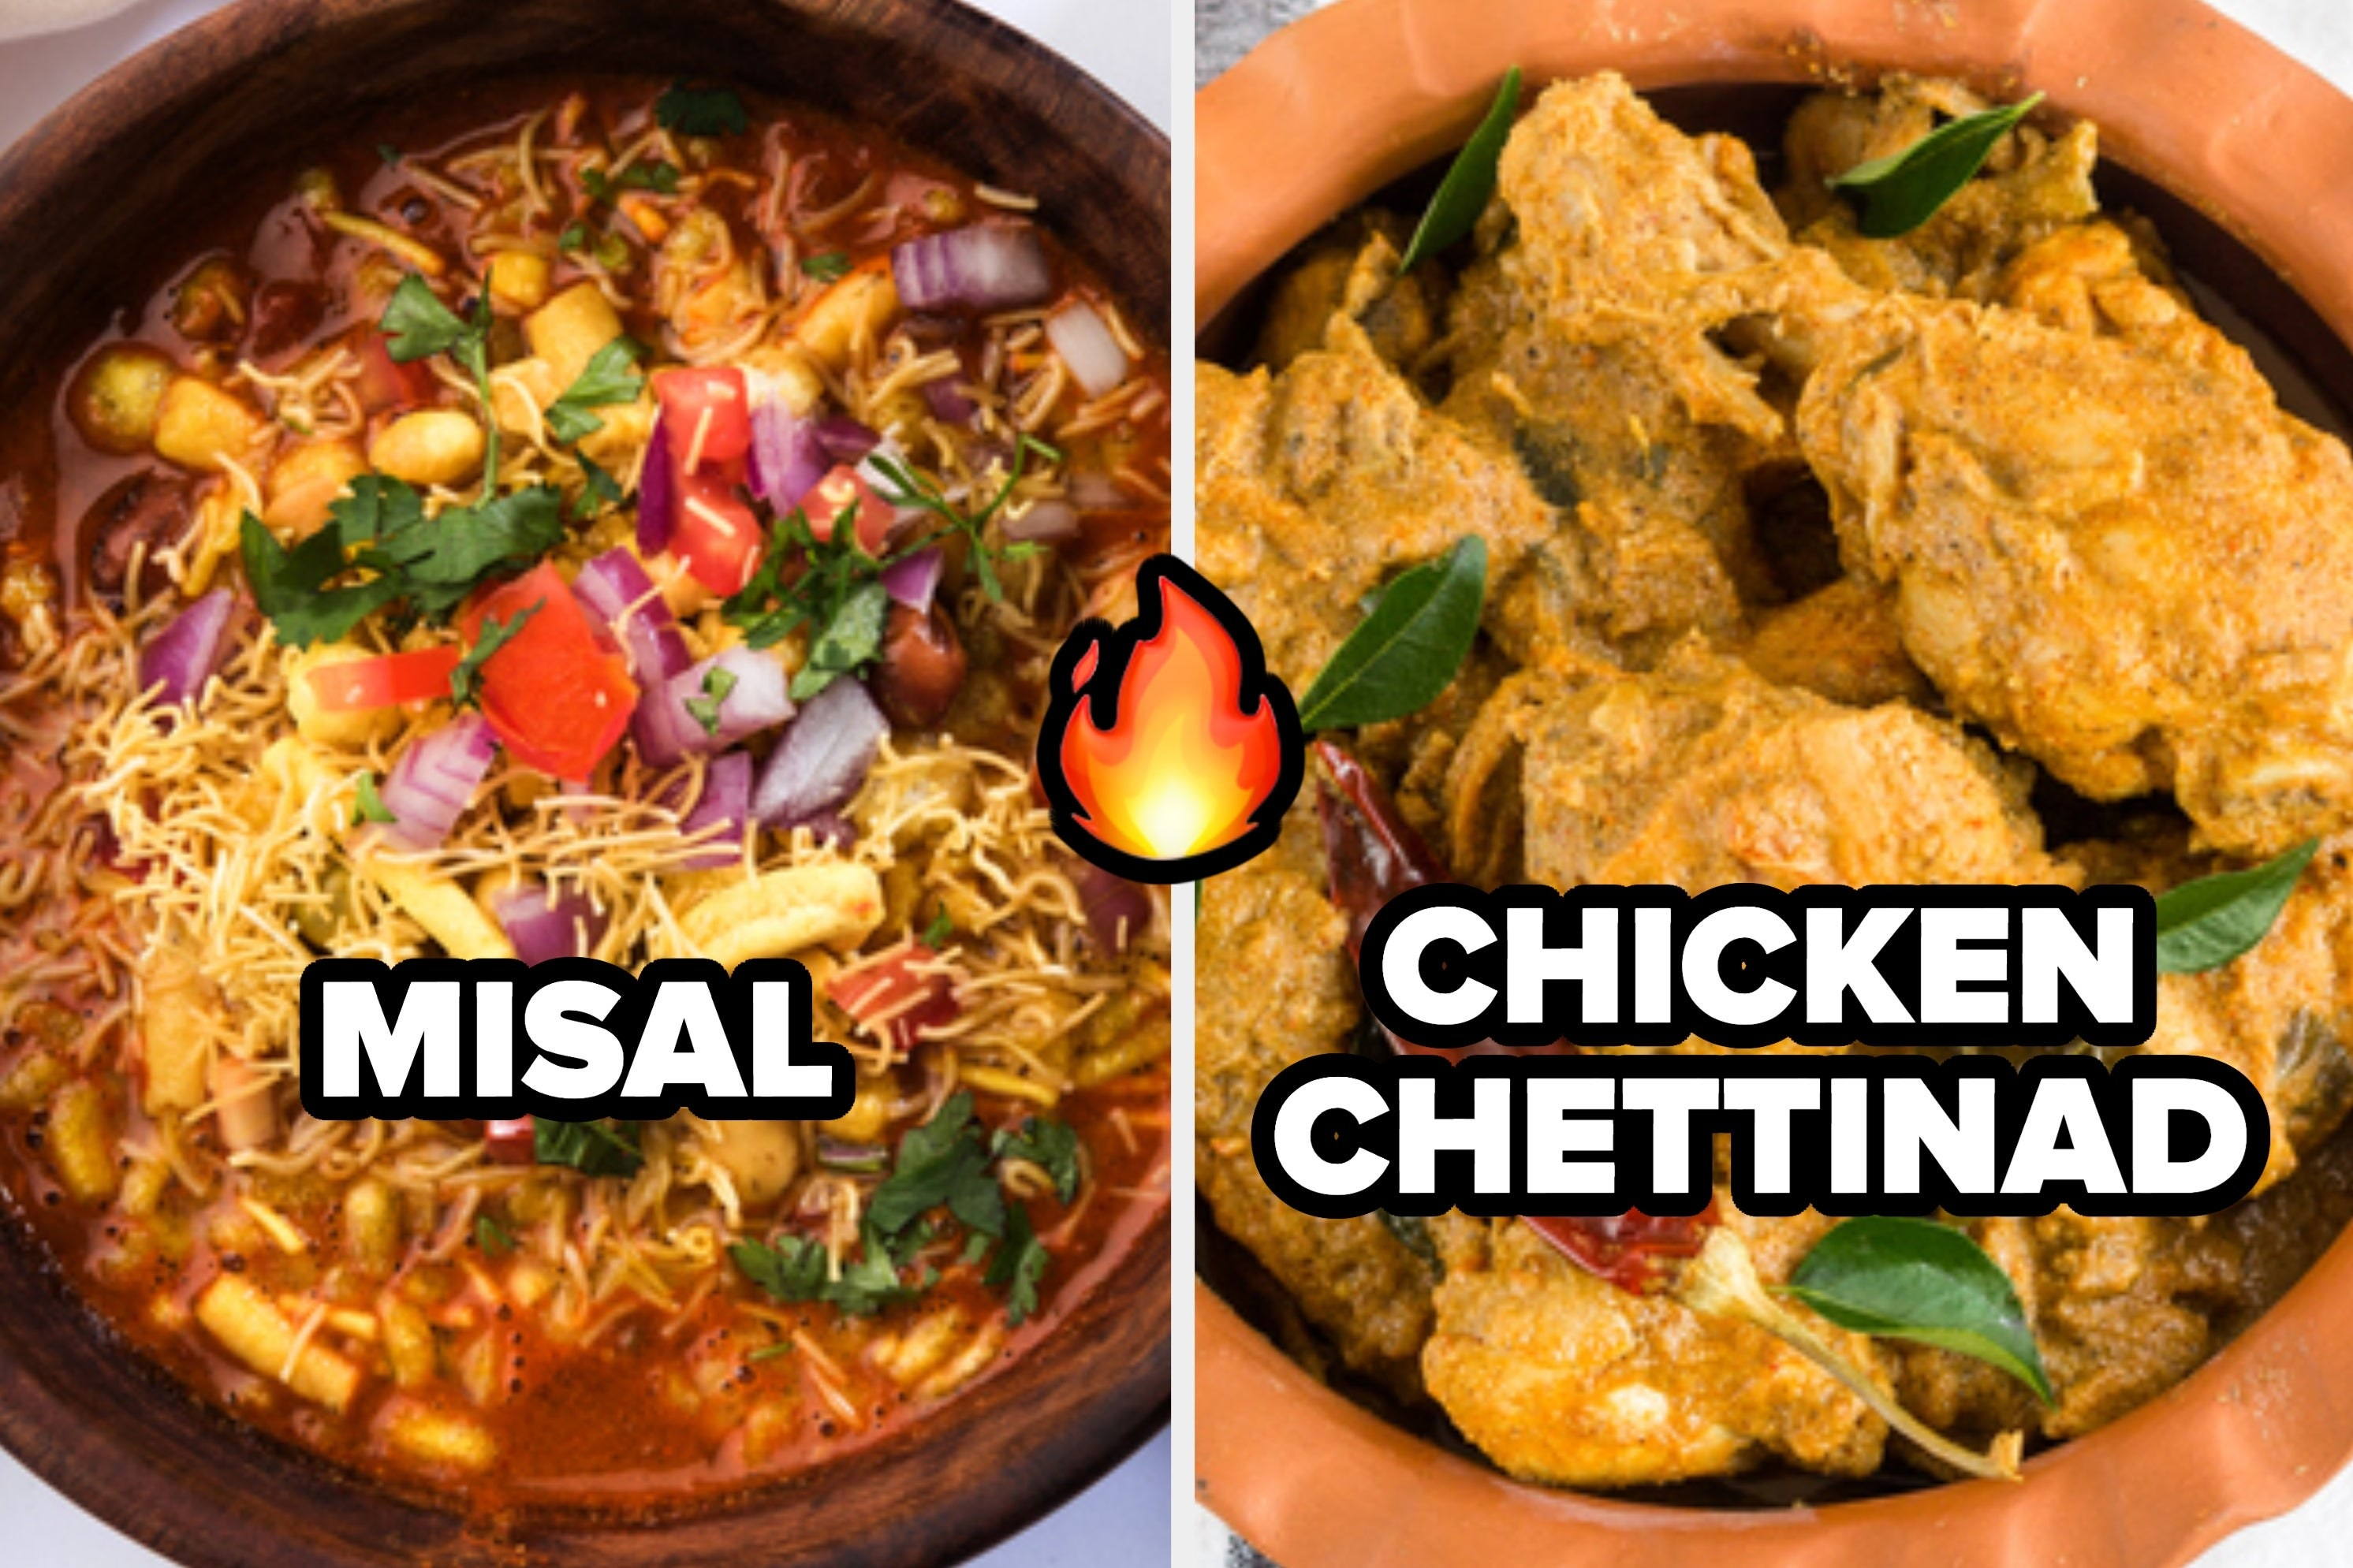 A collage of some misal and a bowl of chicken chettinad